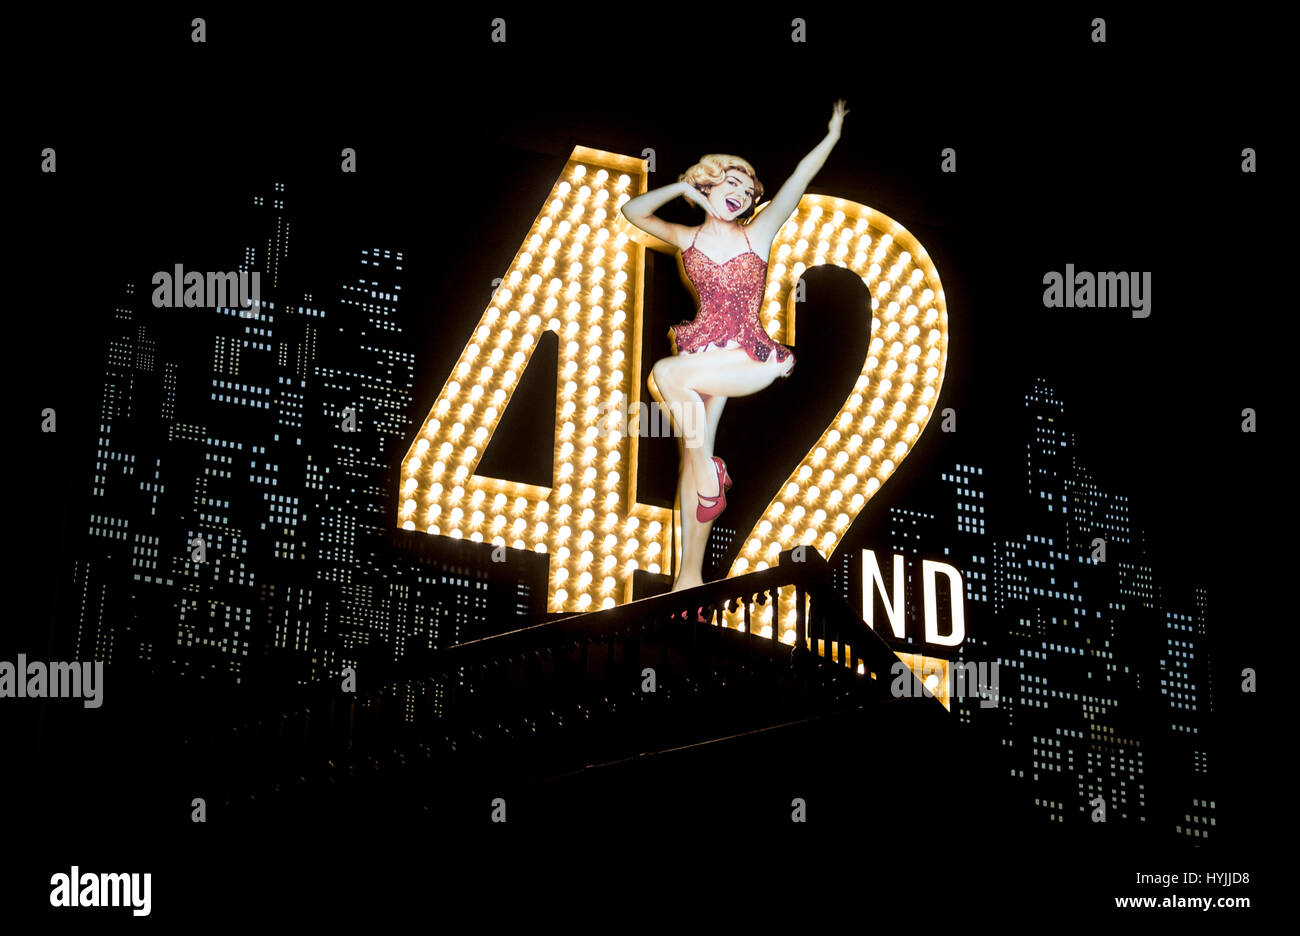 A sign for the musical 42nd Street at the Theatre Royal, Drury Lane, London. - Stock Image